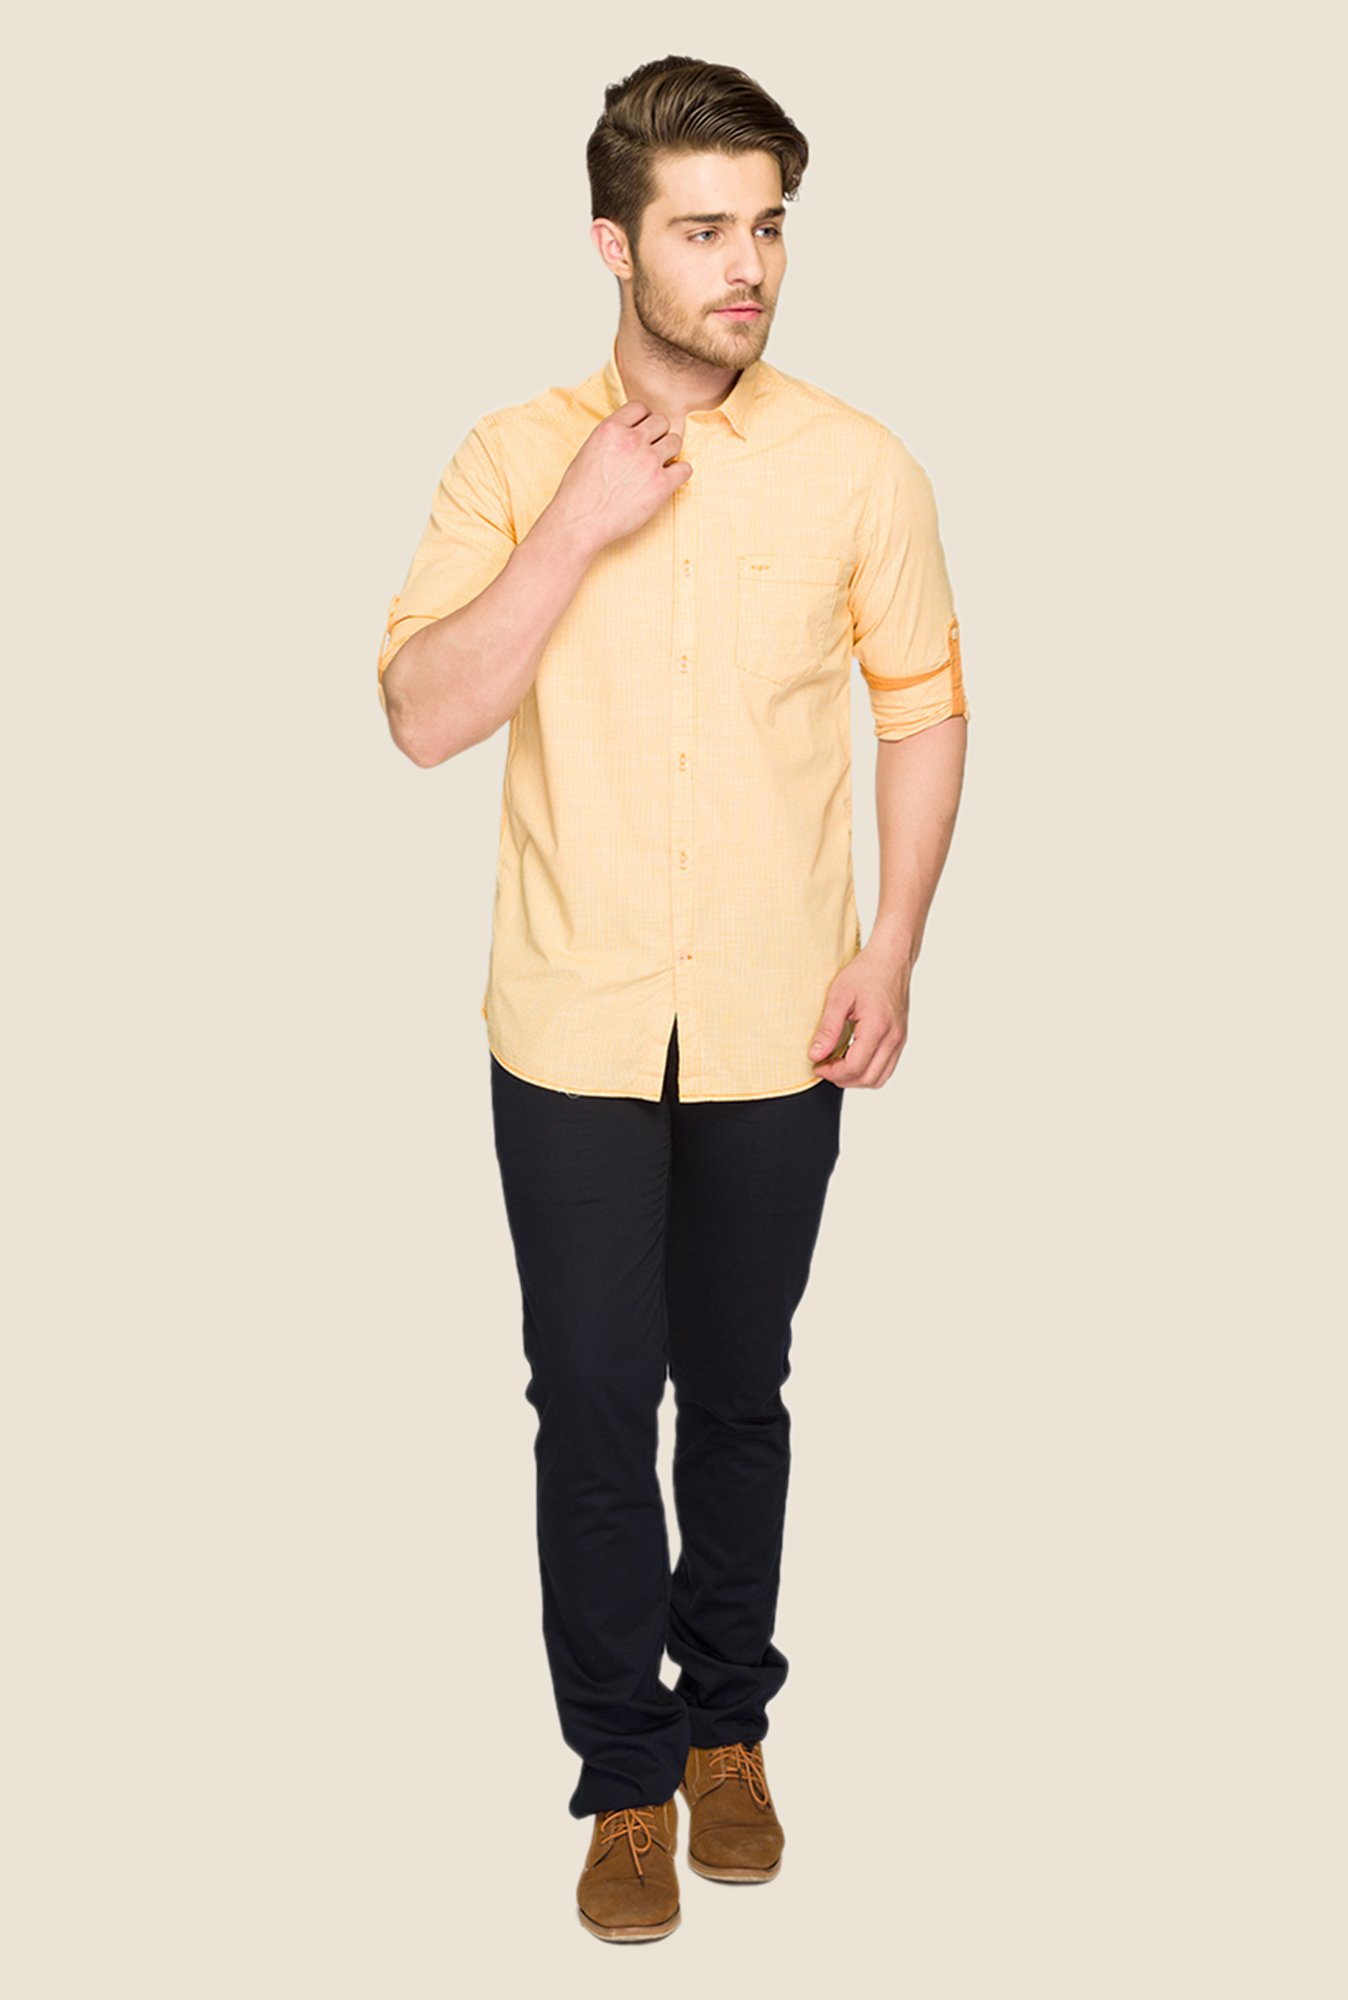 ColorPlus Orange Solid Shirt